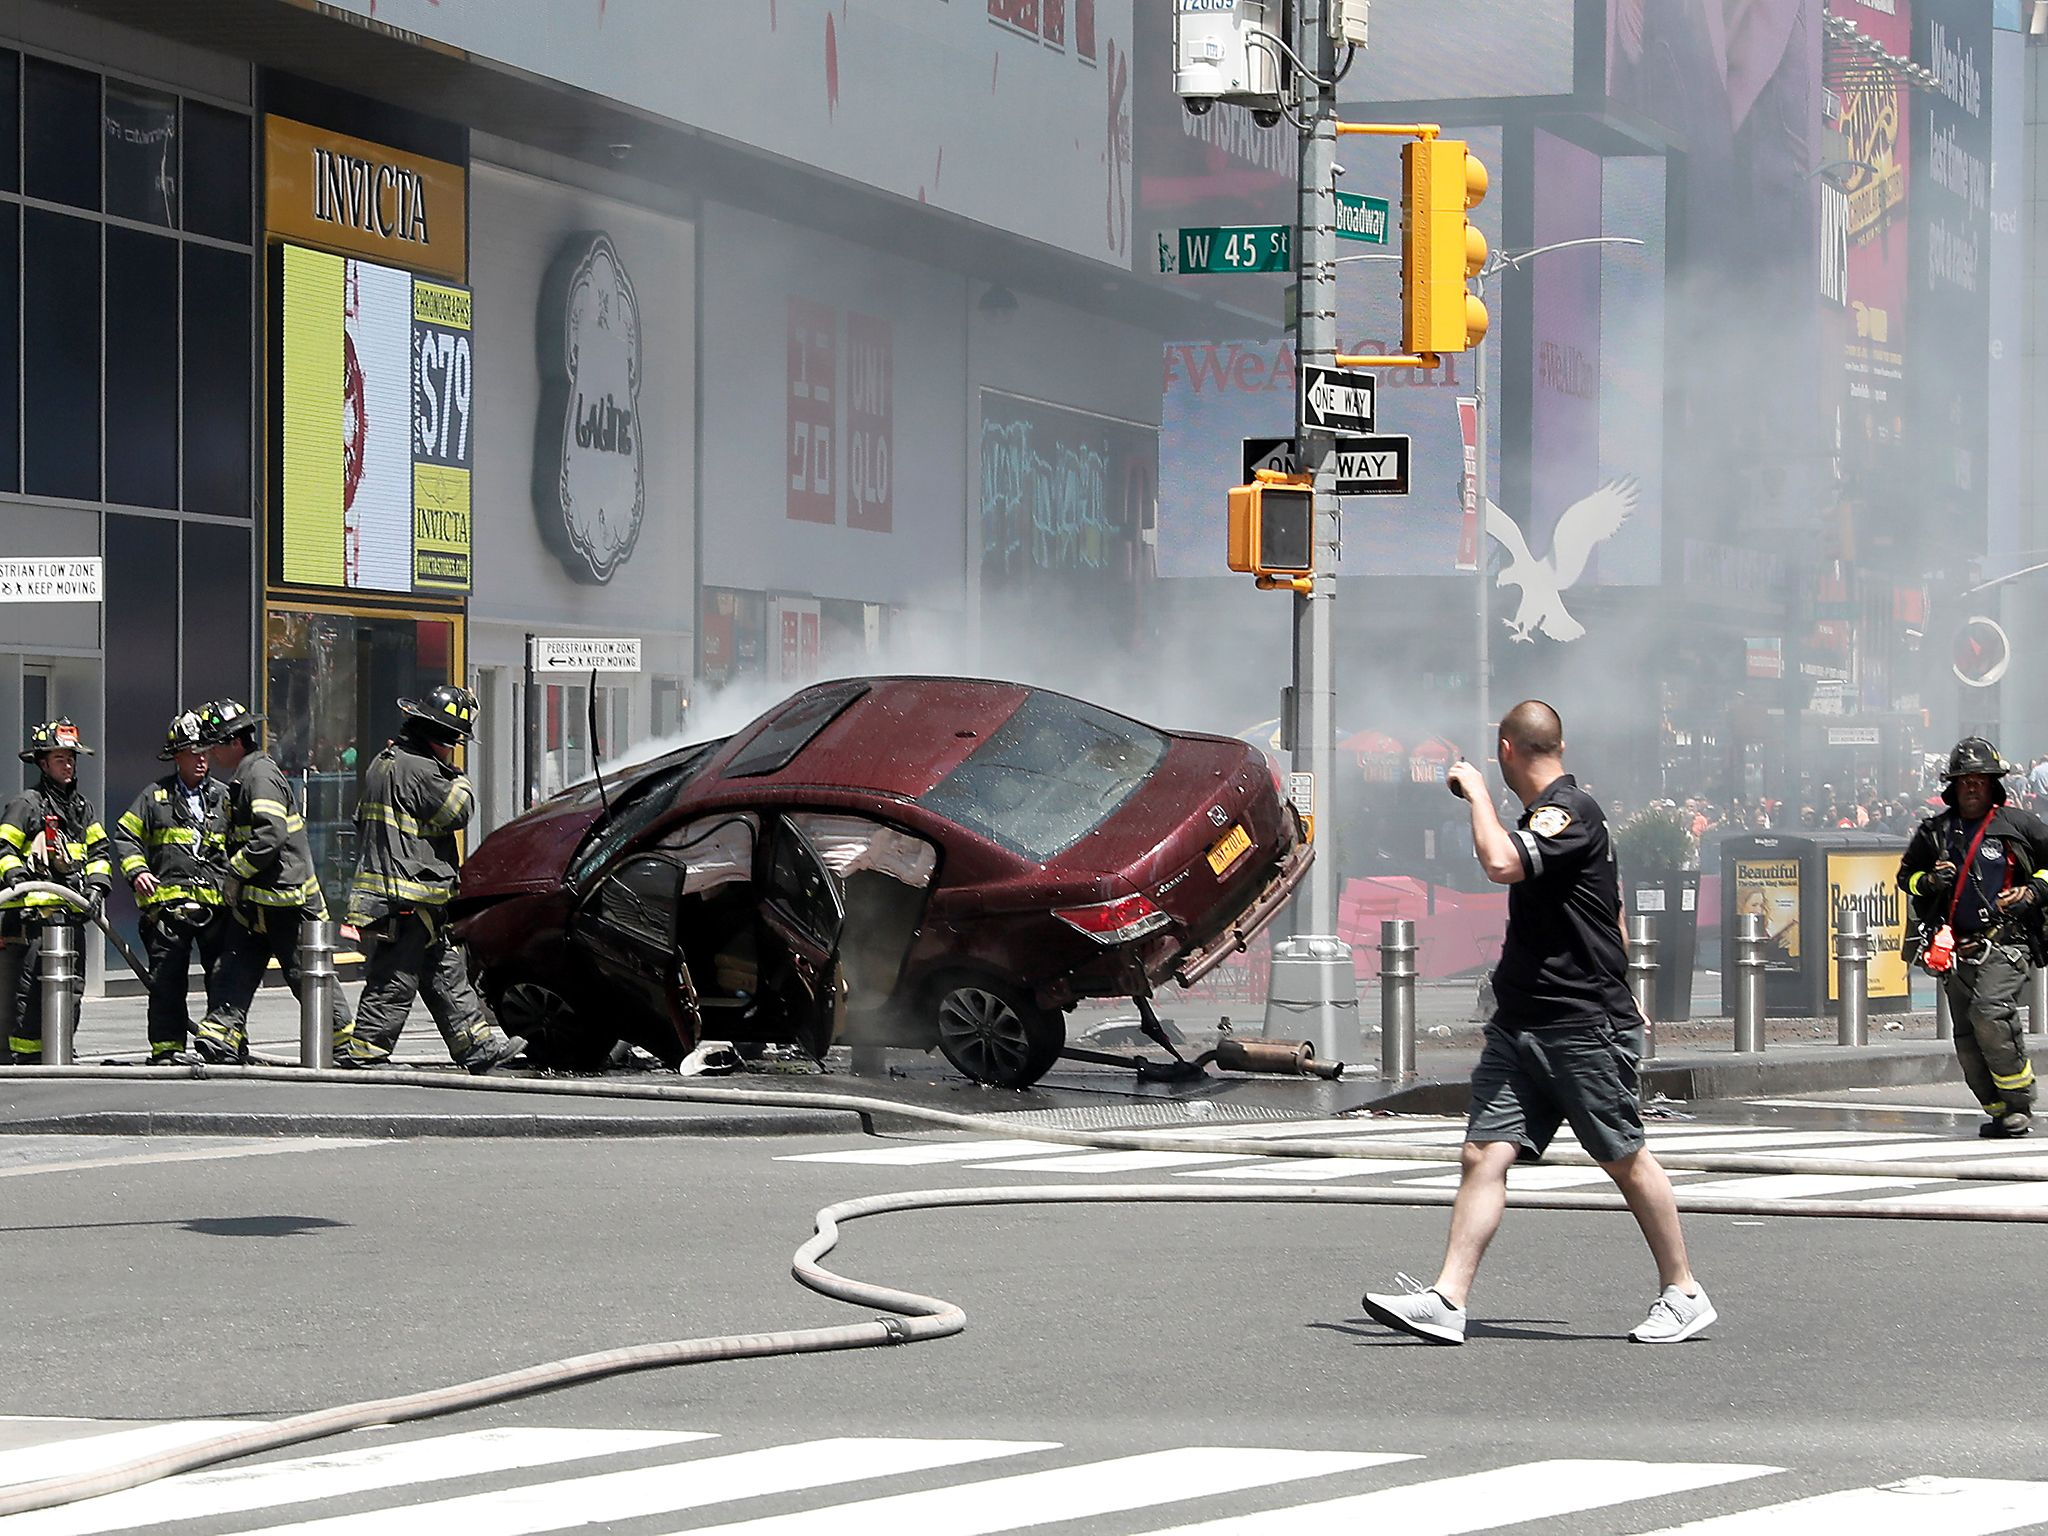 Times Square crash: Driver who ploughed into crowd of pedestrians in New York 'wanted to kill them all'